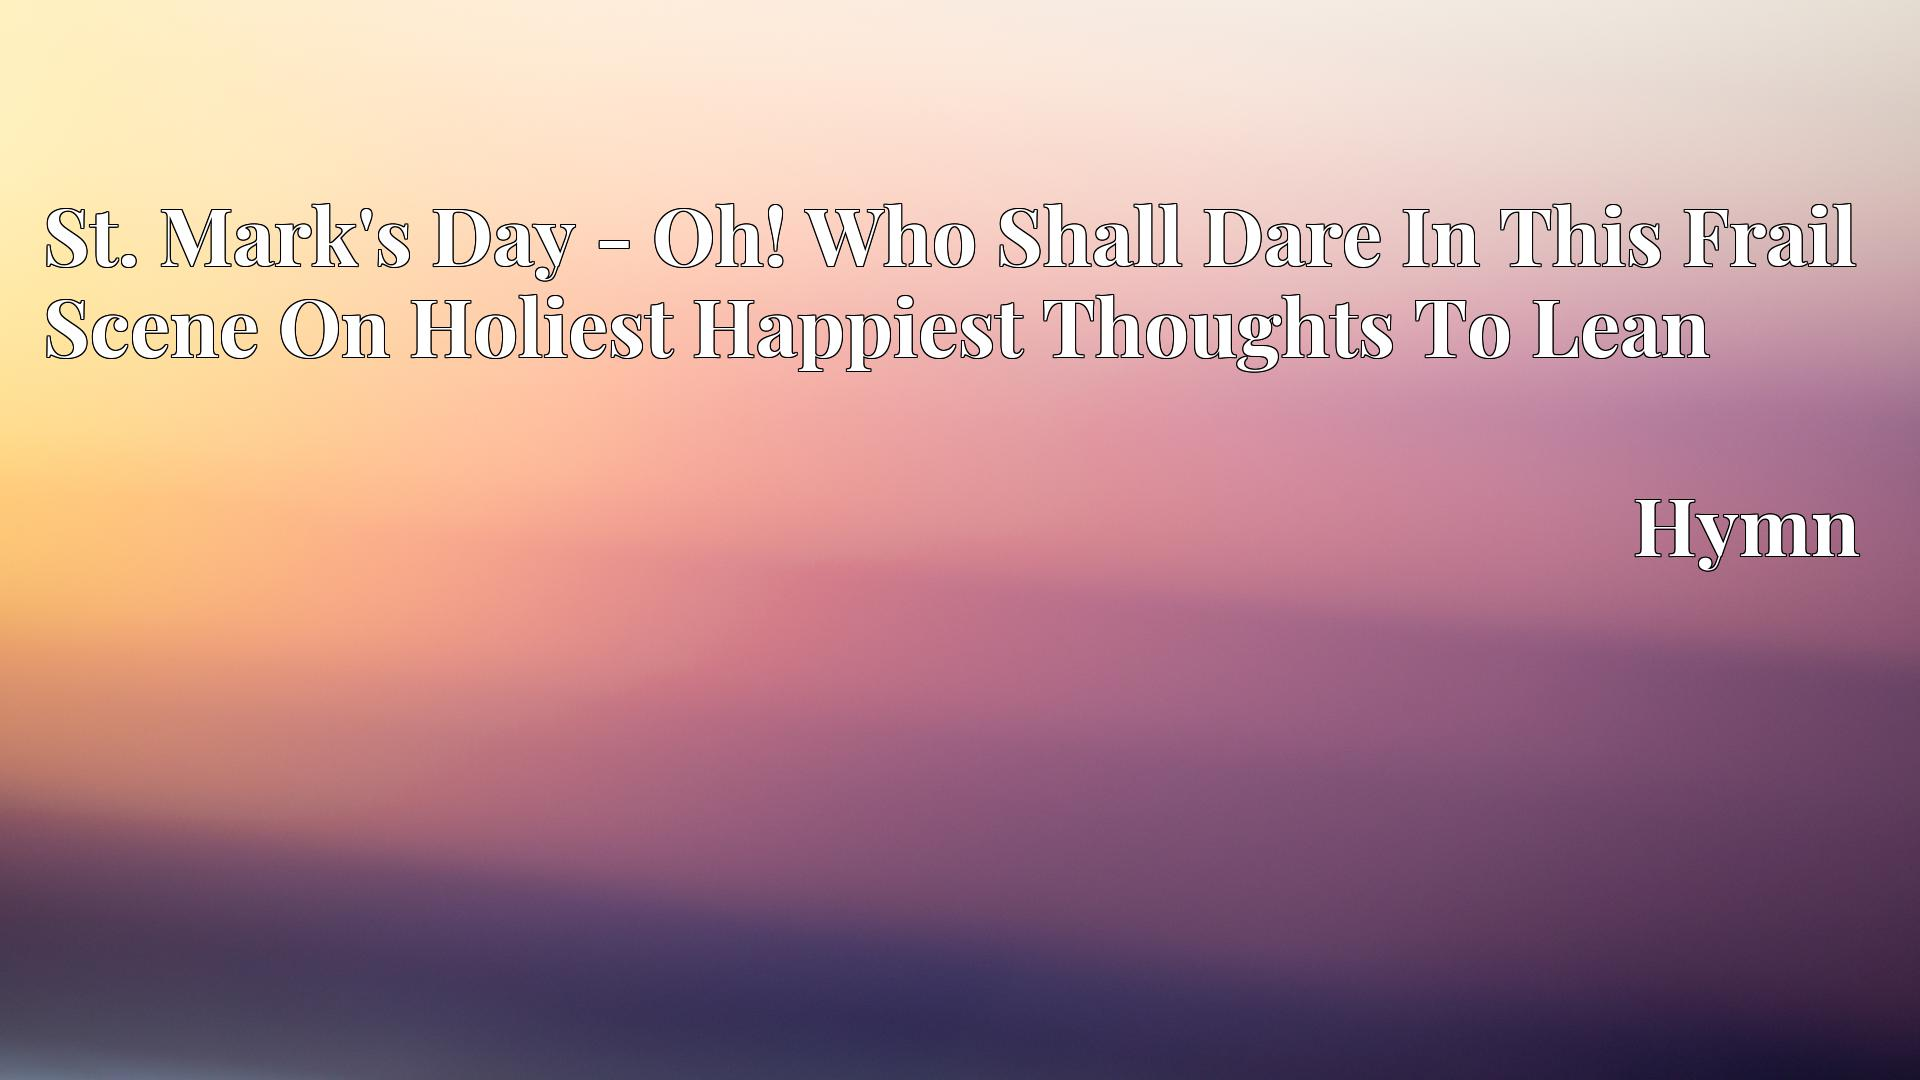 St. Mark's Day - Oh! Who Shall Dare In This Frail Scene On Holiest Happiest Thoughts To Lean - Hymn